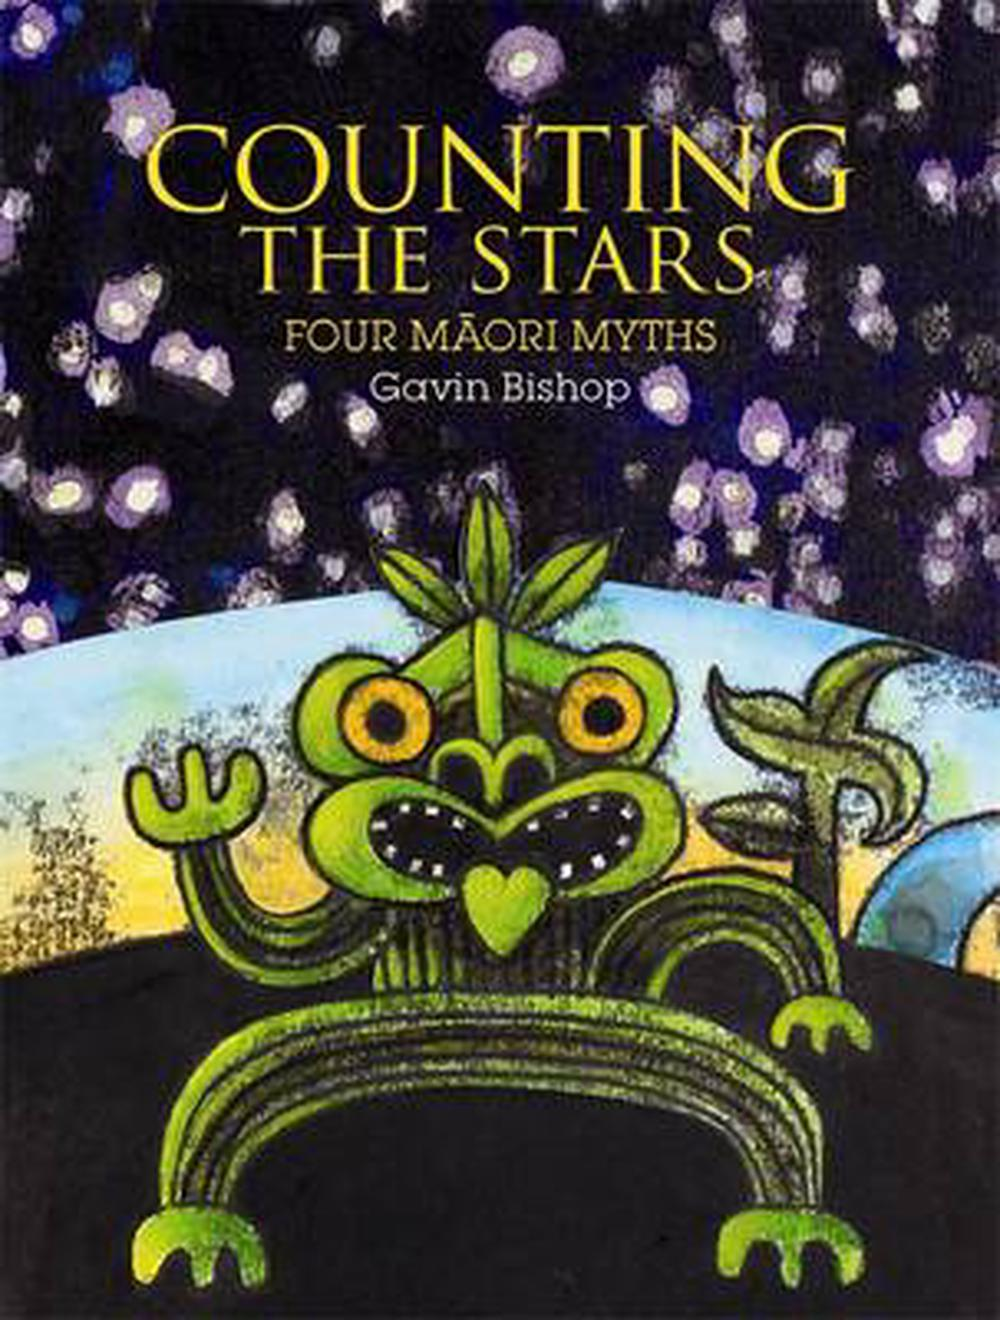 Counting the Stars